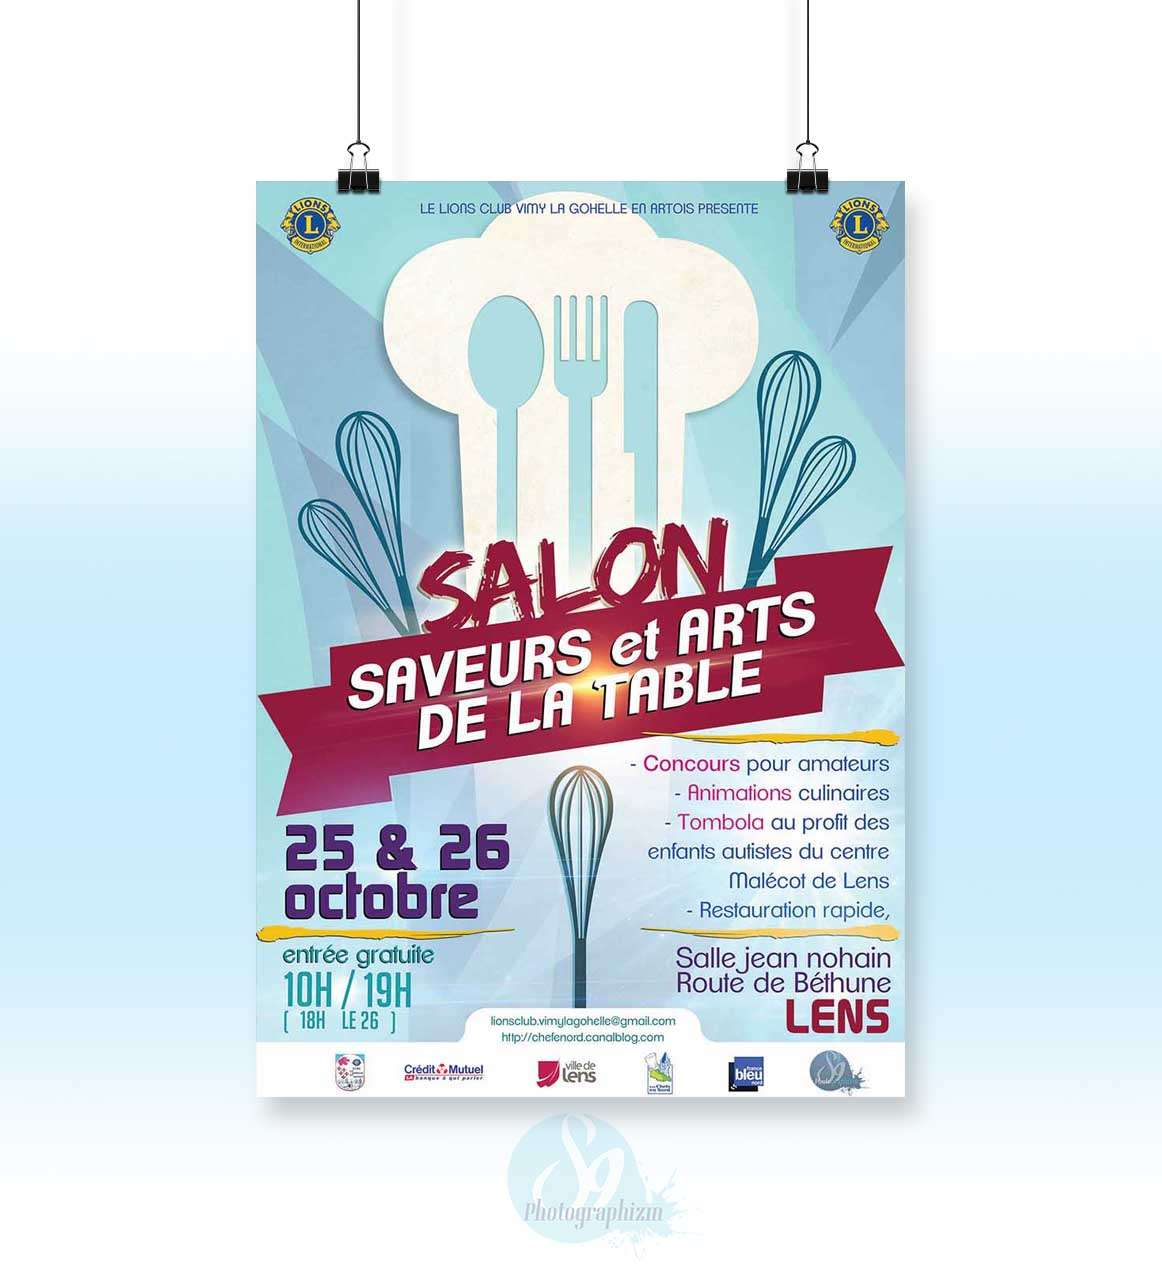 Affiche salon art de la table lens s9 photographizm - Salon art de la table ...